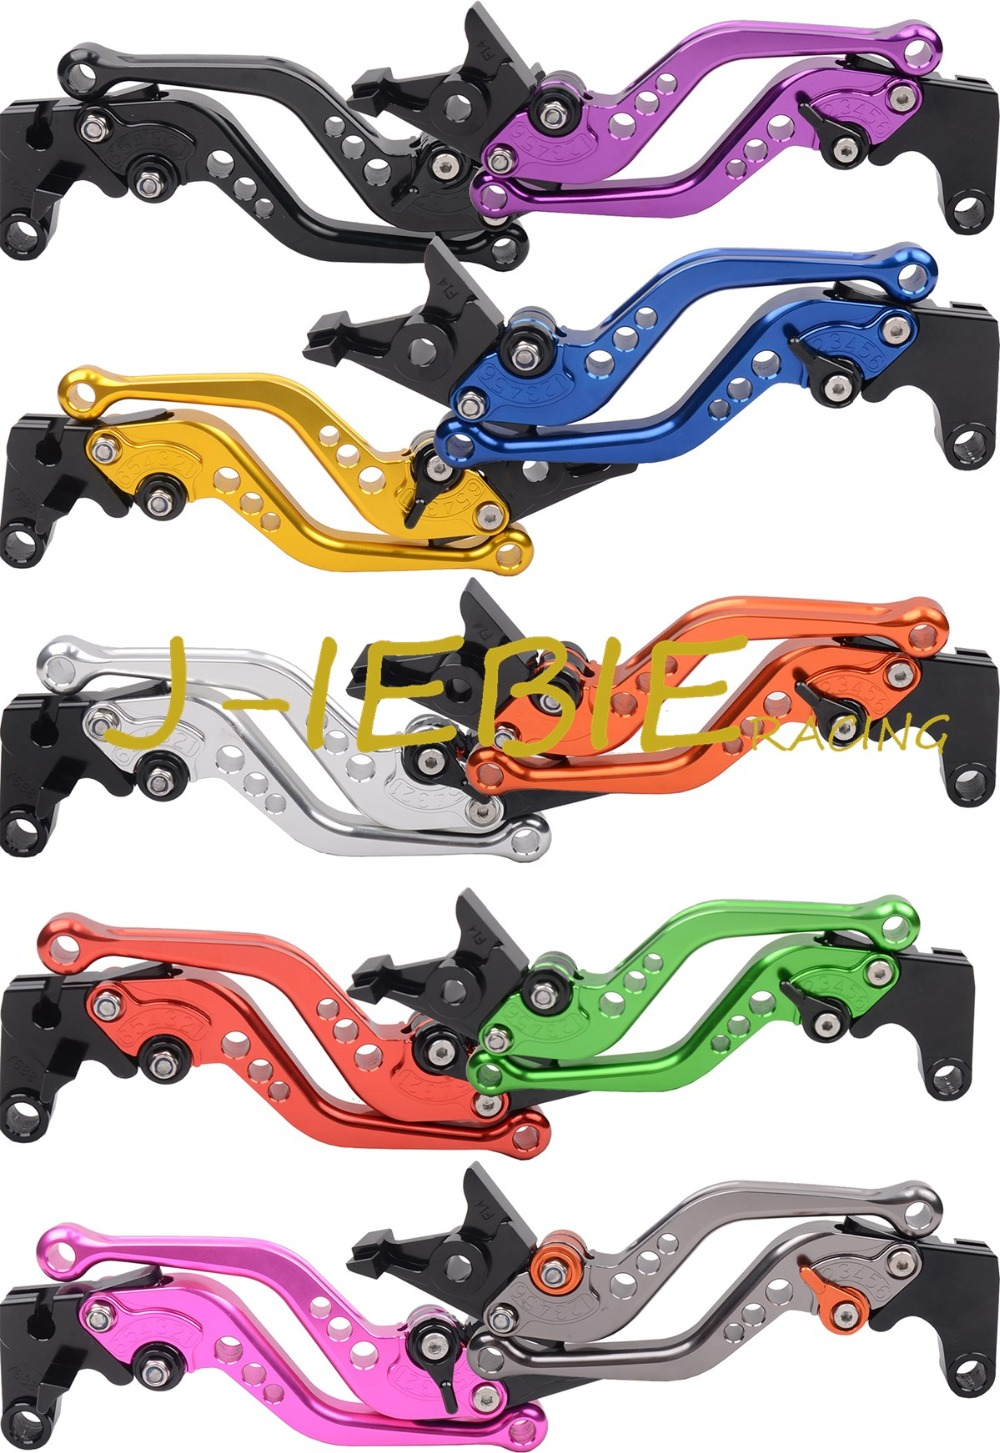 Shorty CNC Shorty Levers Brake Clutch Levers For Honda CB600F Hornet 2007-2014 CBR600F 2011-2014 motocycle accessories for honda cb600f cb900f cbf600 short brake clutch levers black